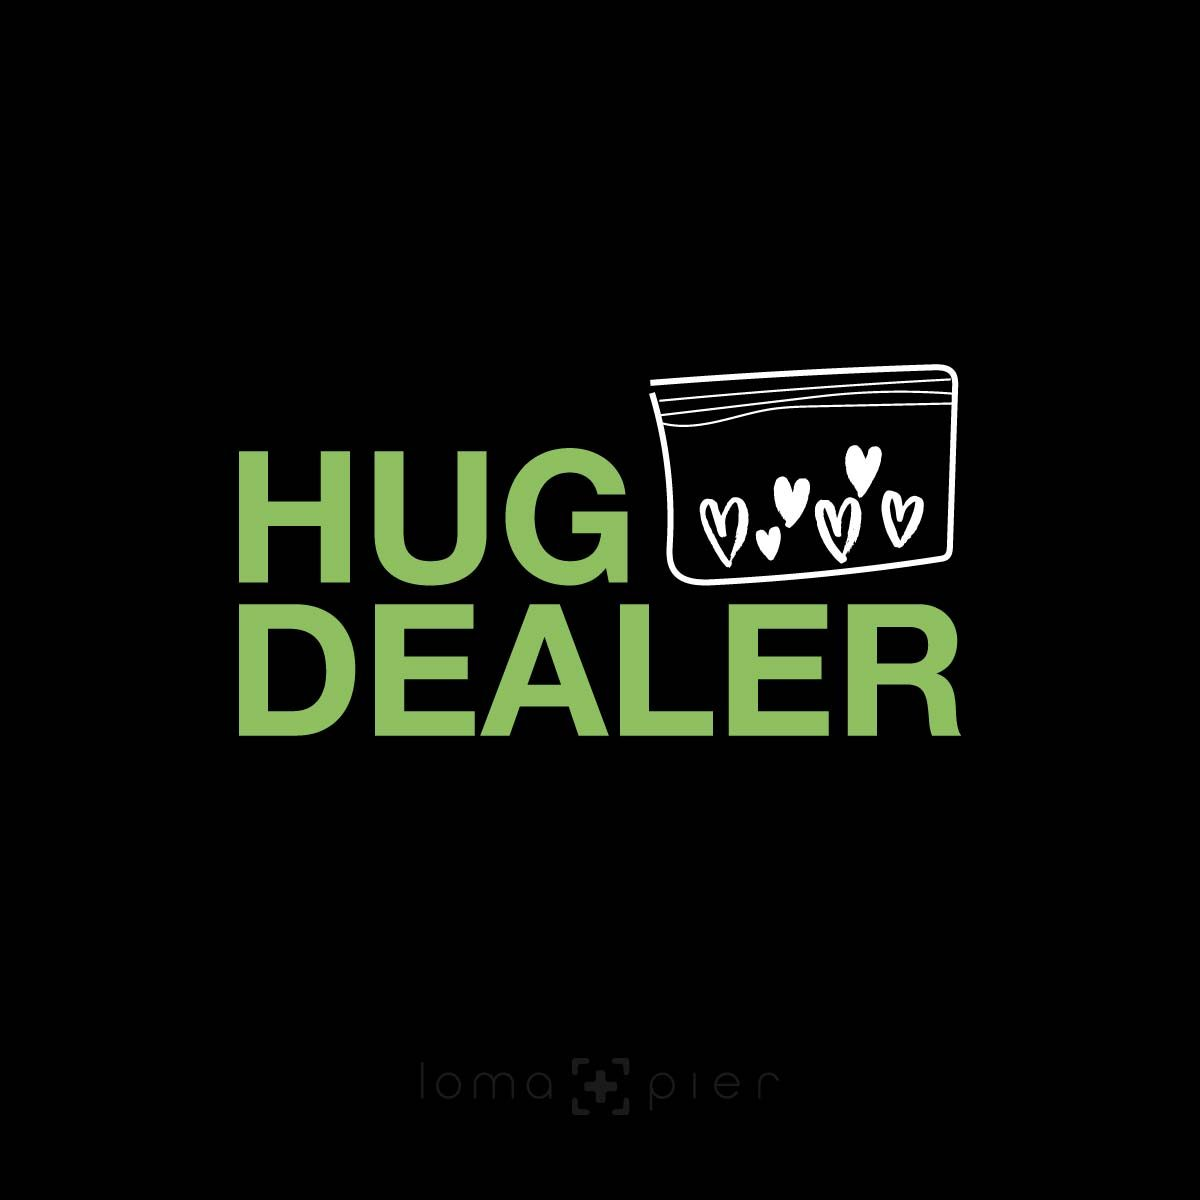 HUG DEALER design by loma+pier